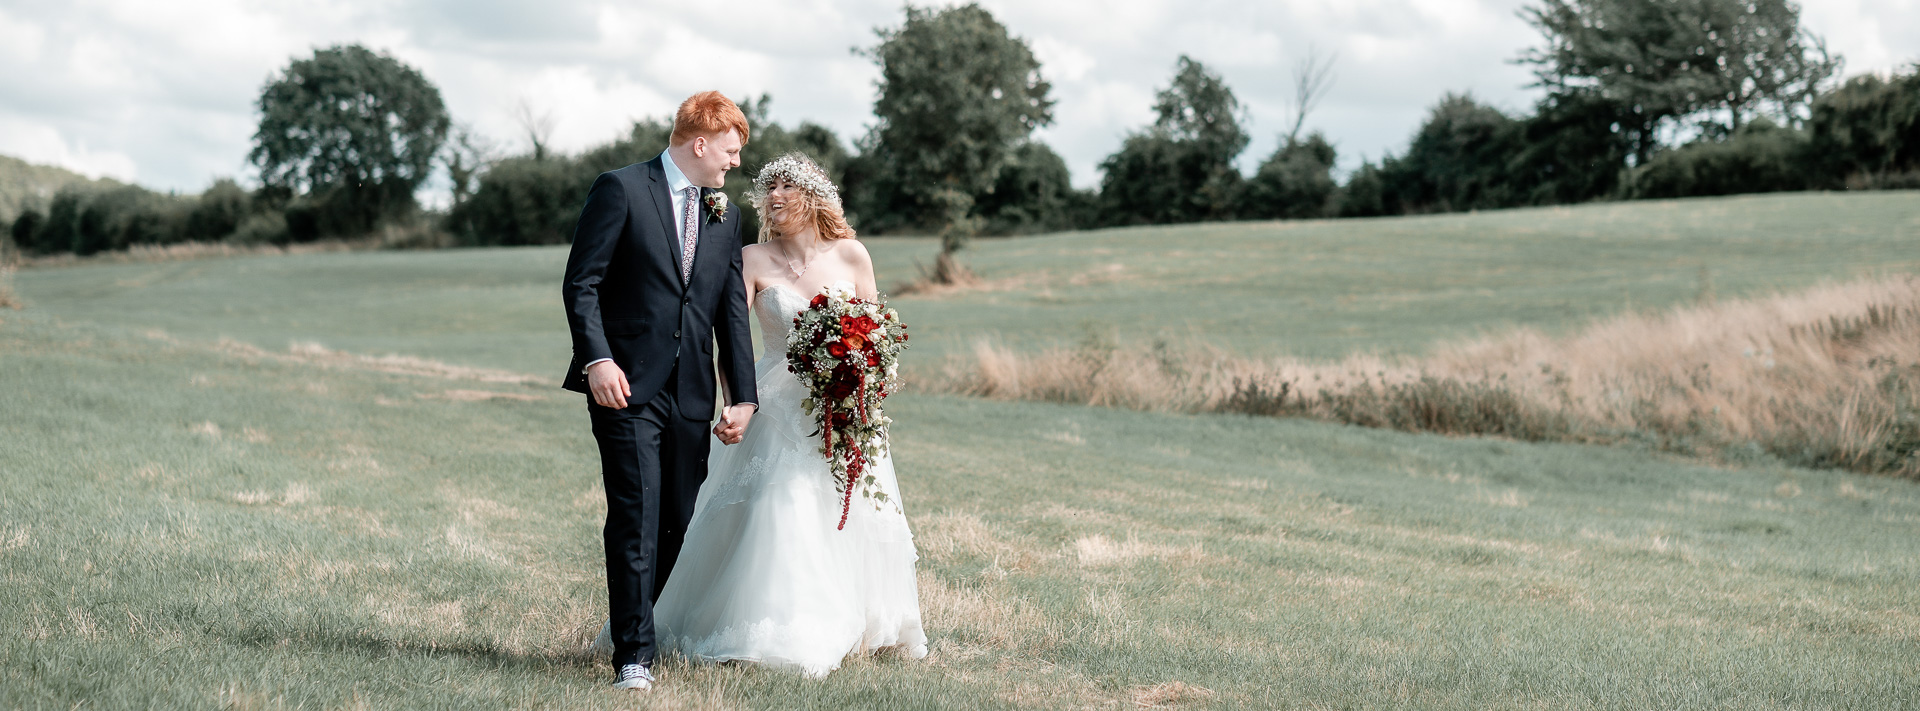 Jemima and Joes Wedding at St Marys Aldham